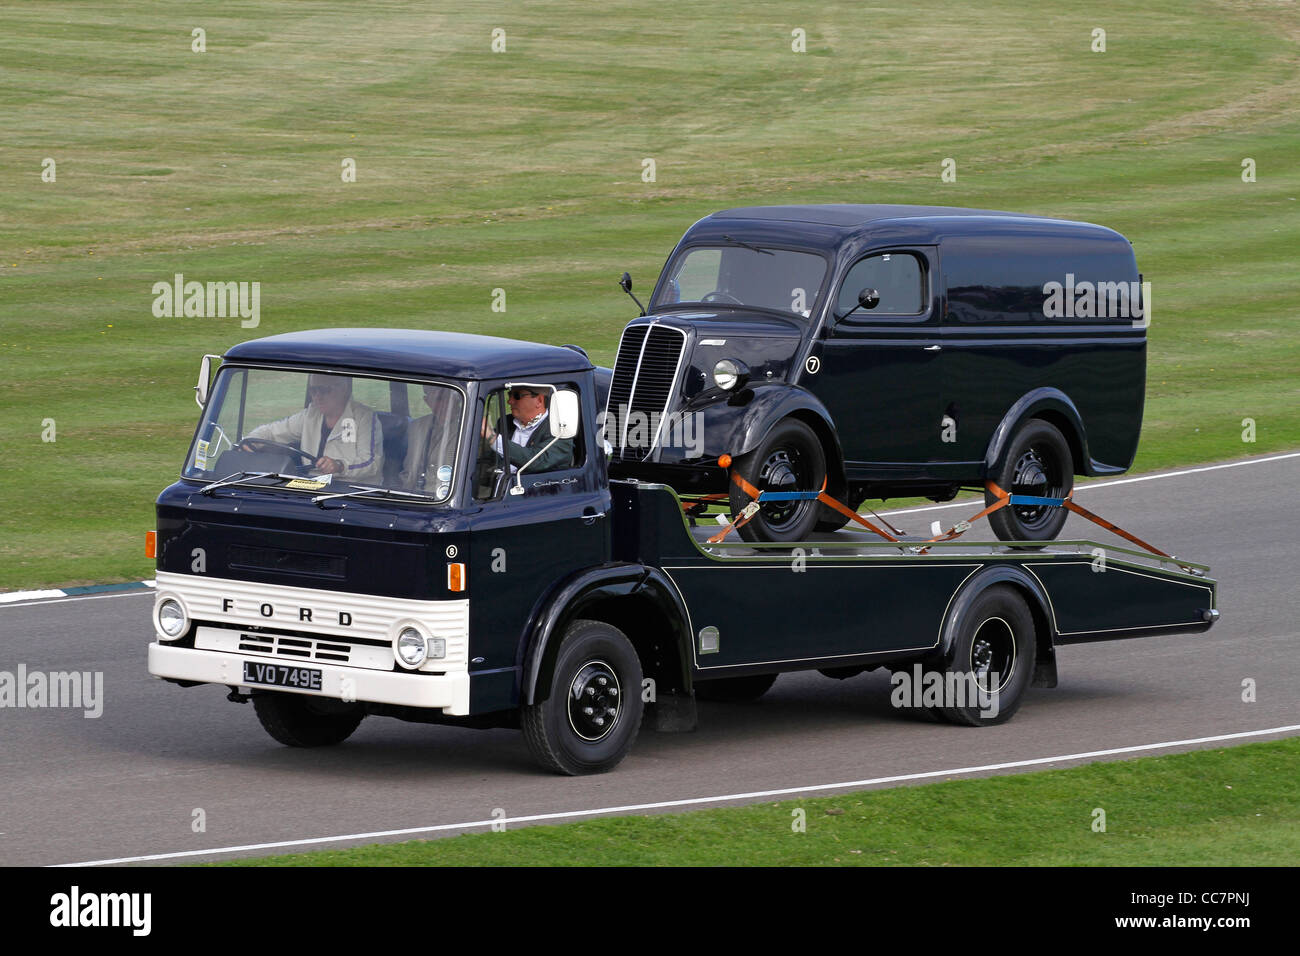 1967 Ford D300 lowloader with van. 2011 Goodwood Revival meeting, Sussex, UK. - Stock Image